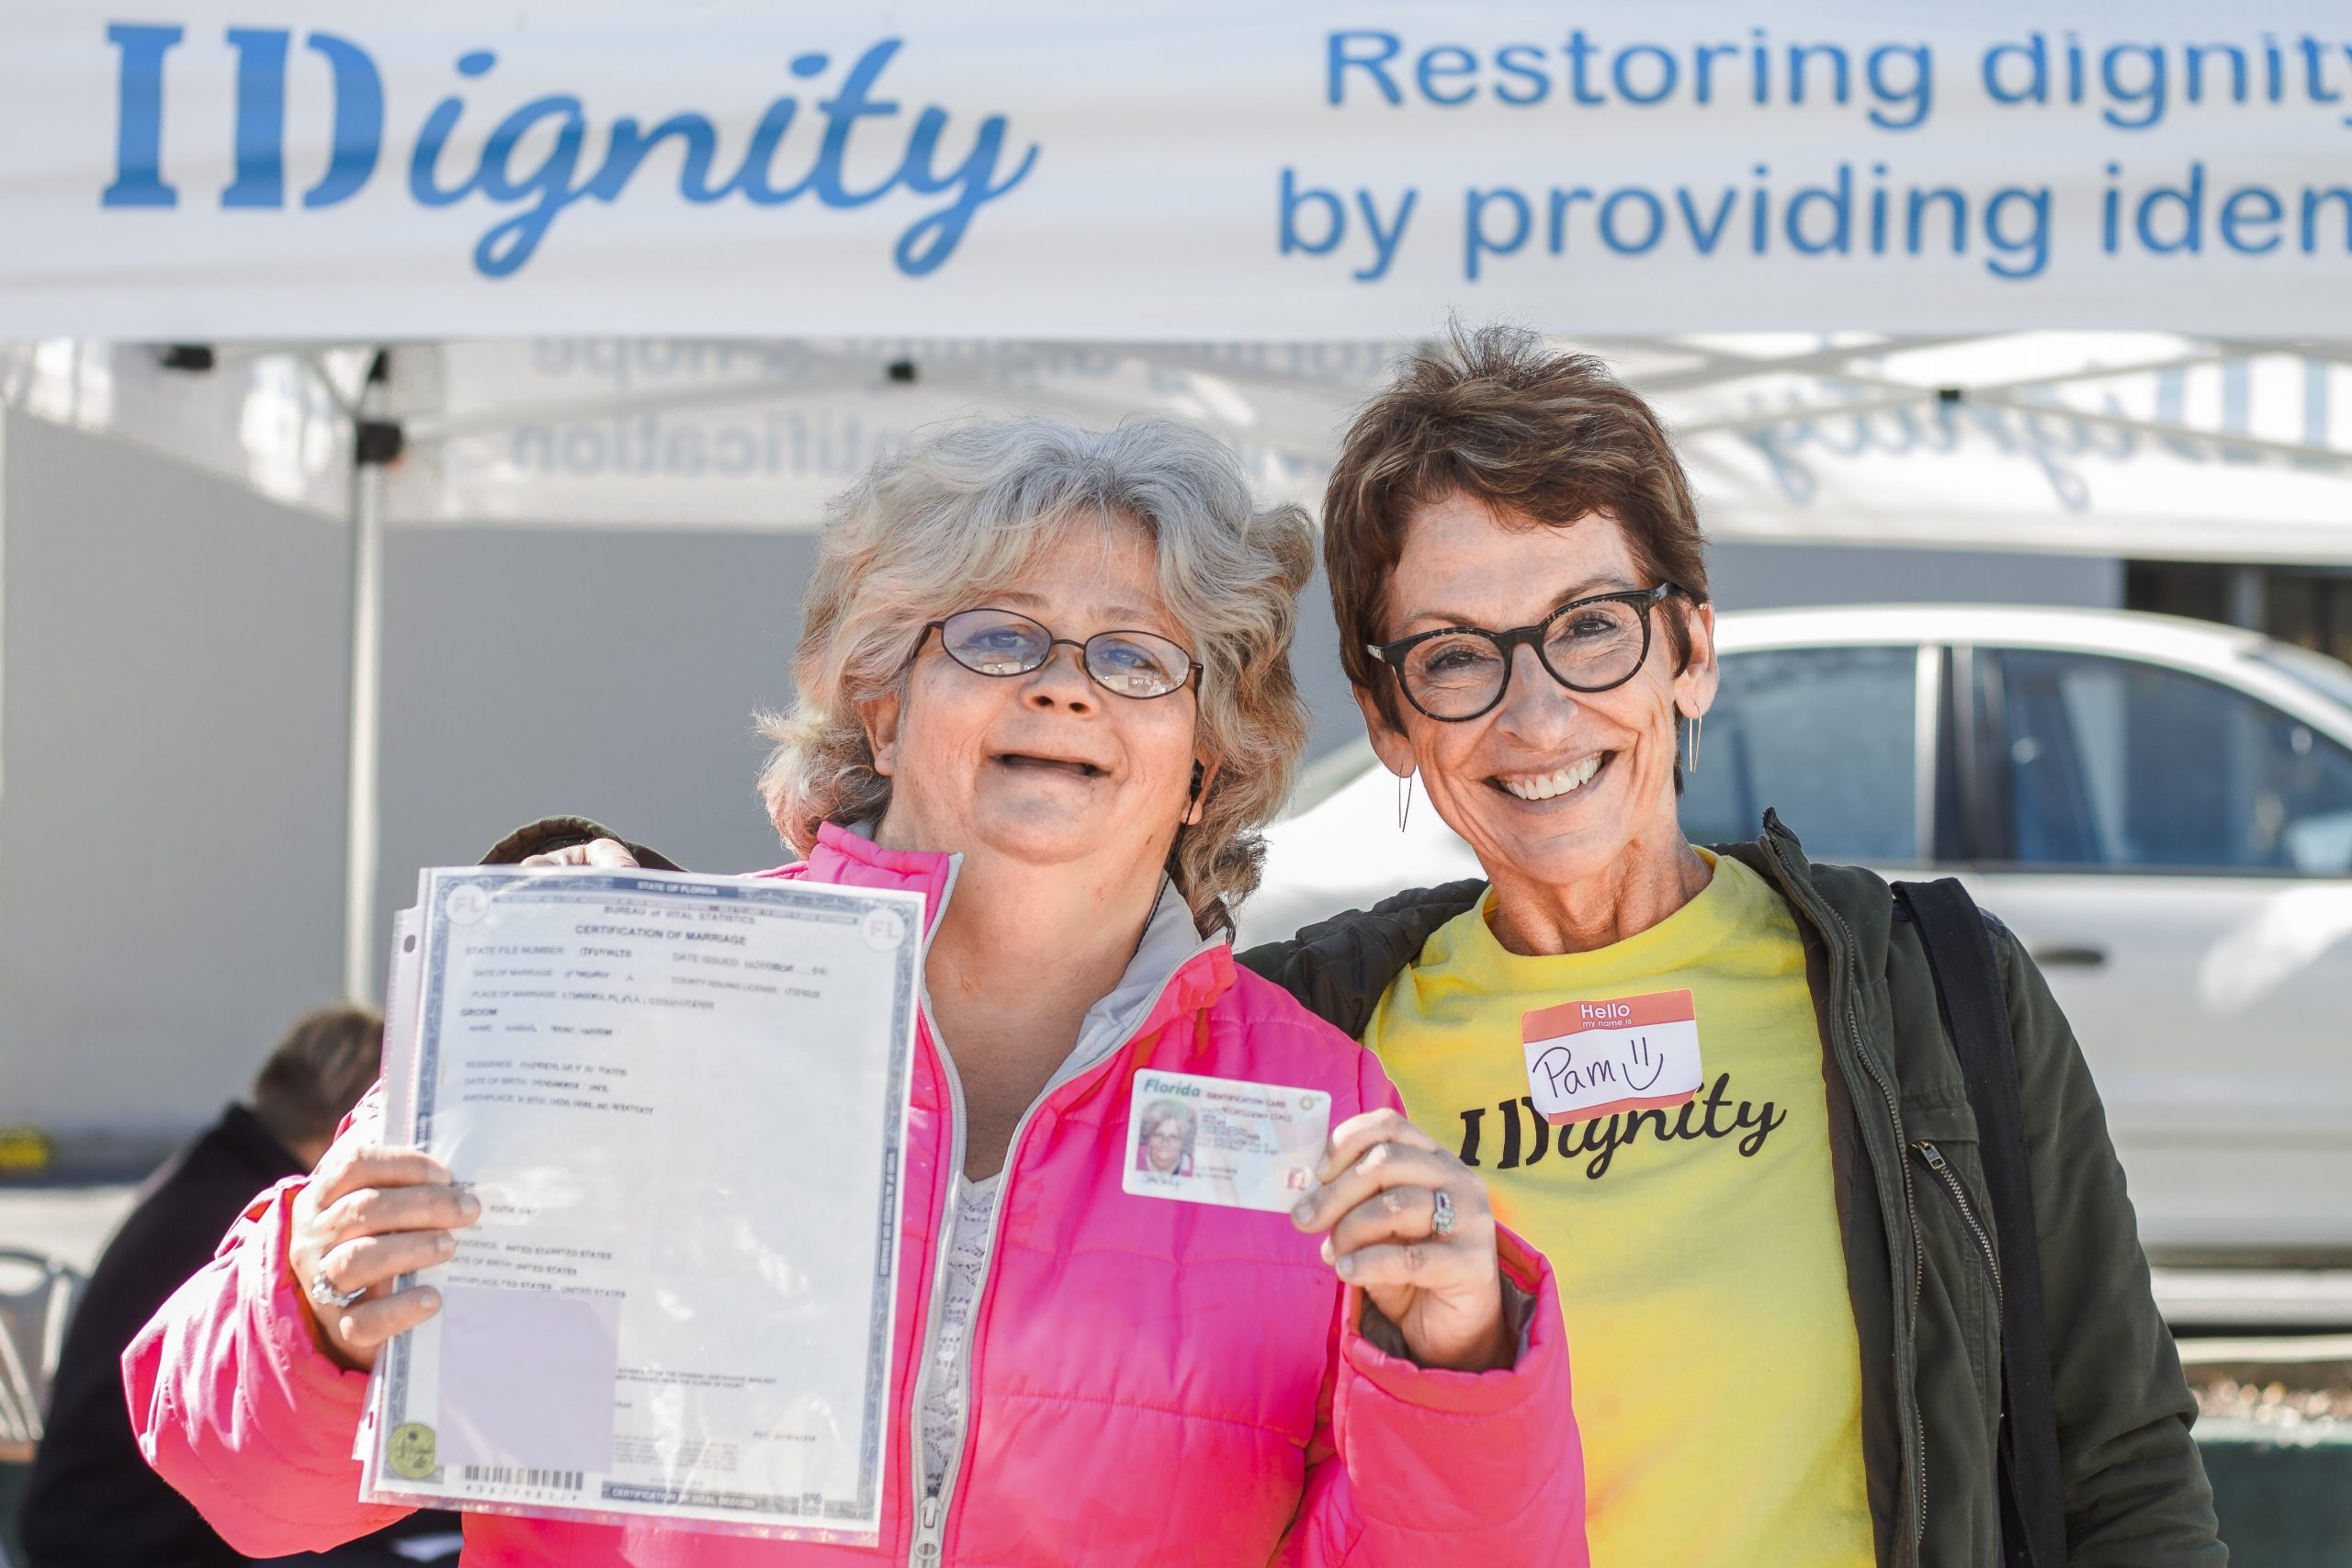 IDignity volunteer Pam with a happy client